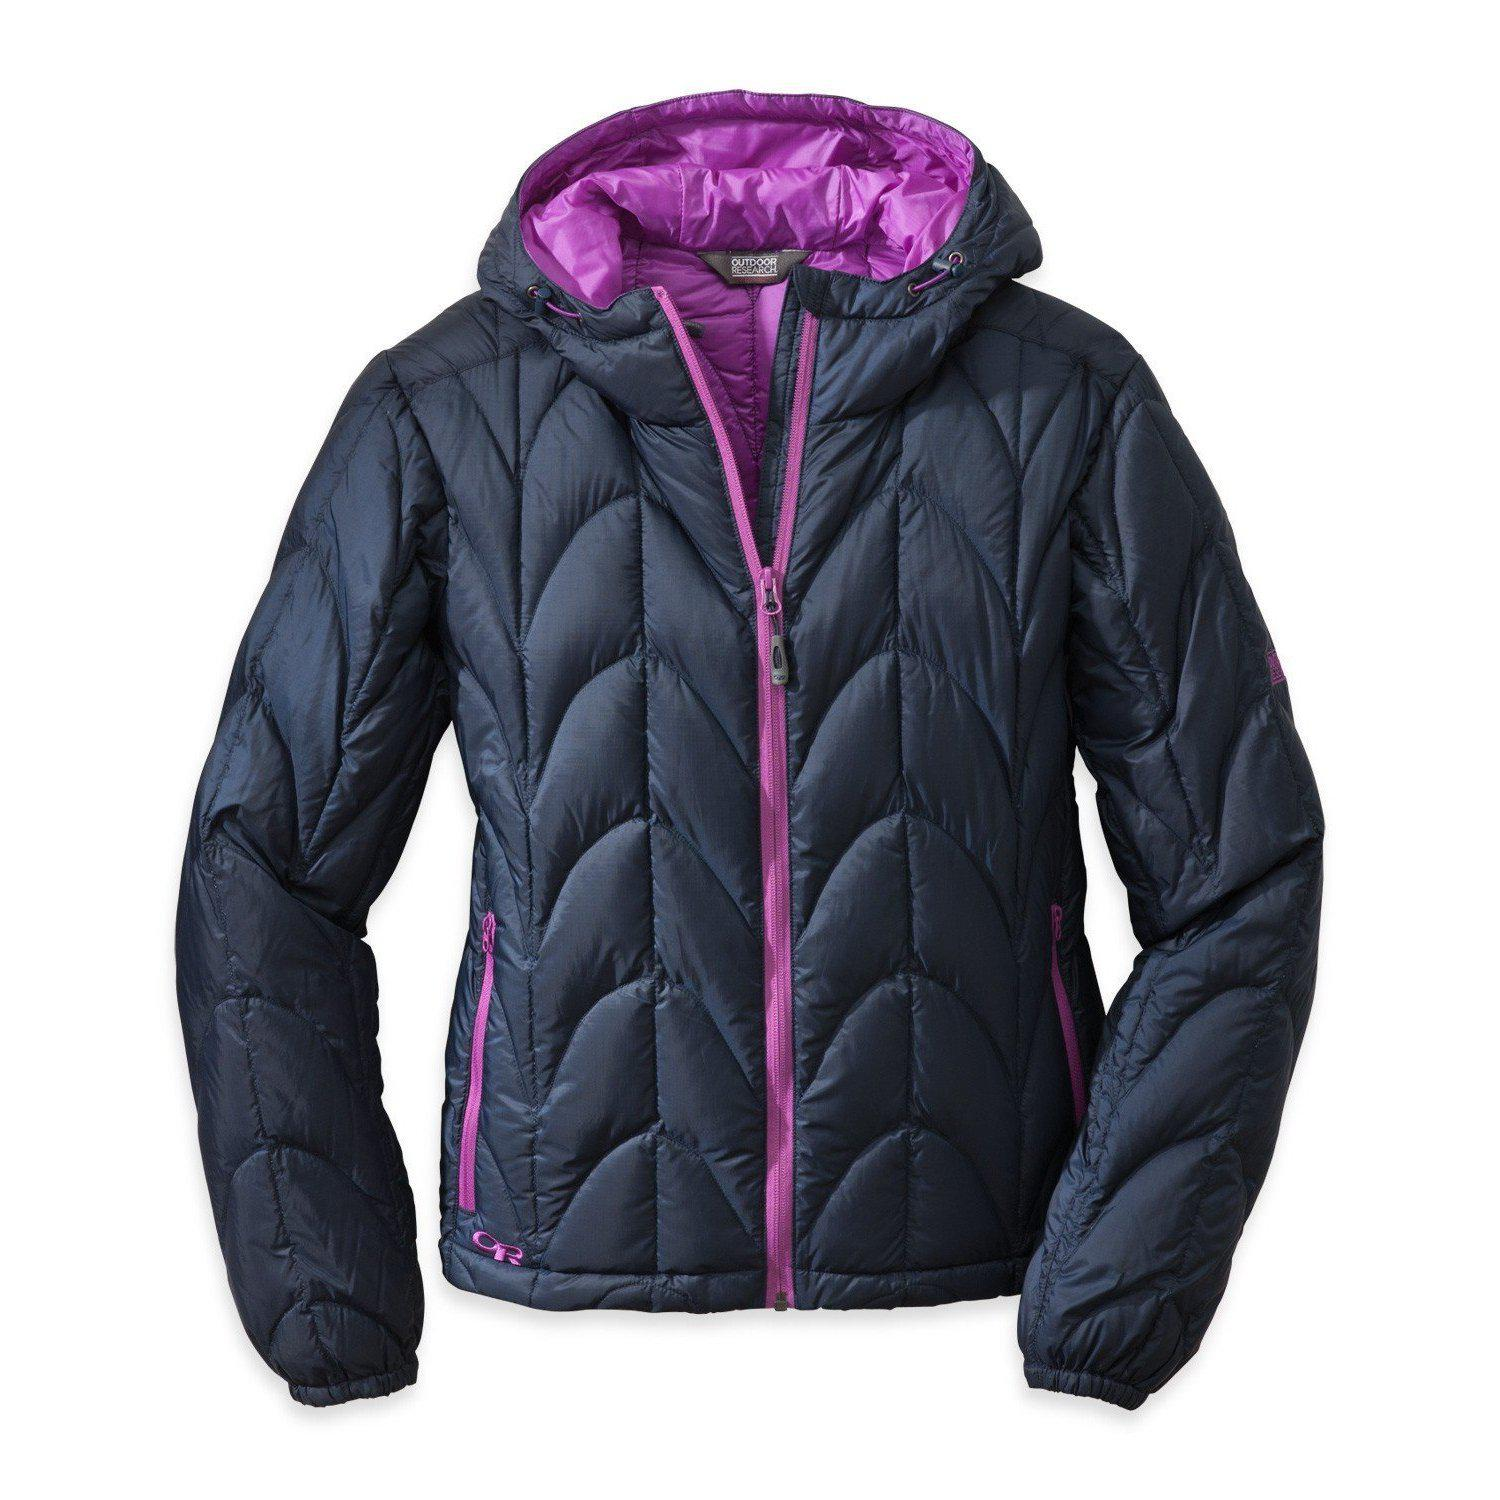 Outdoor Research Women's Aria Down Hoody™ - CLEARANCE 40% OFF